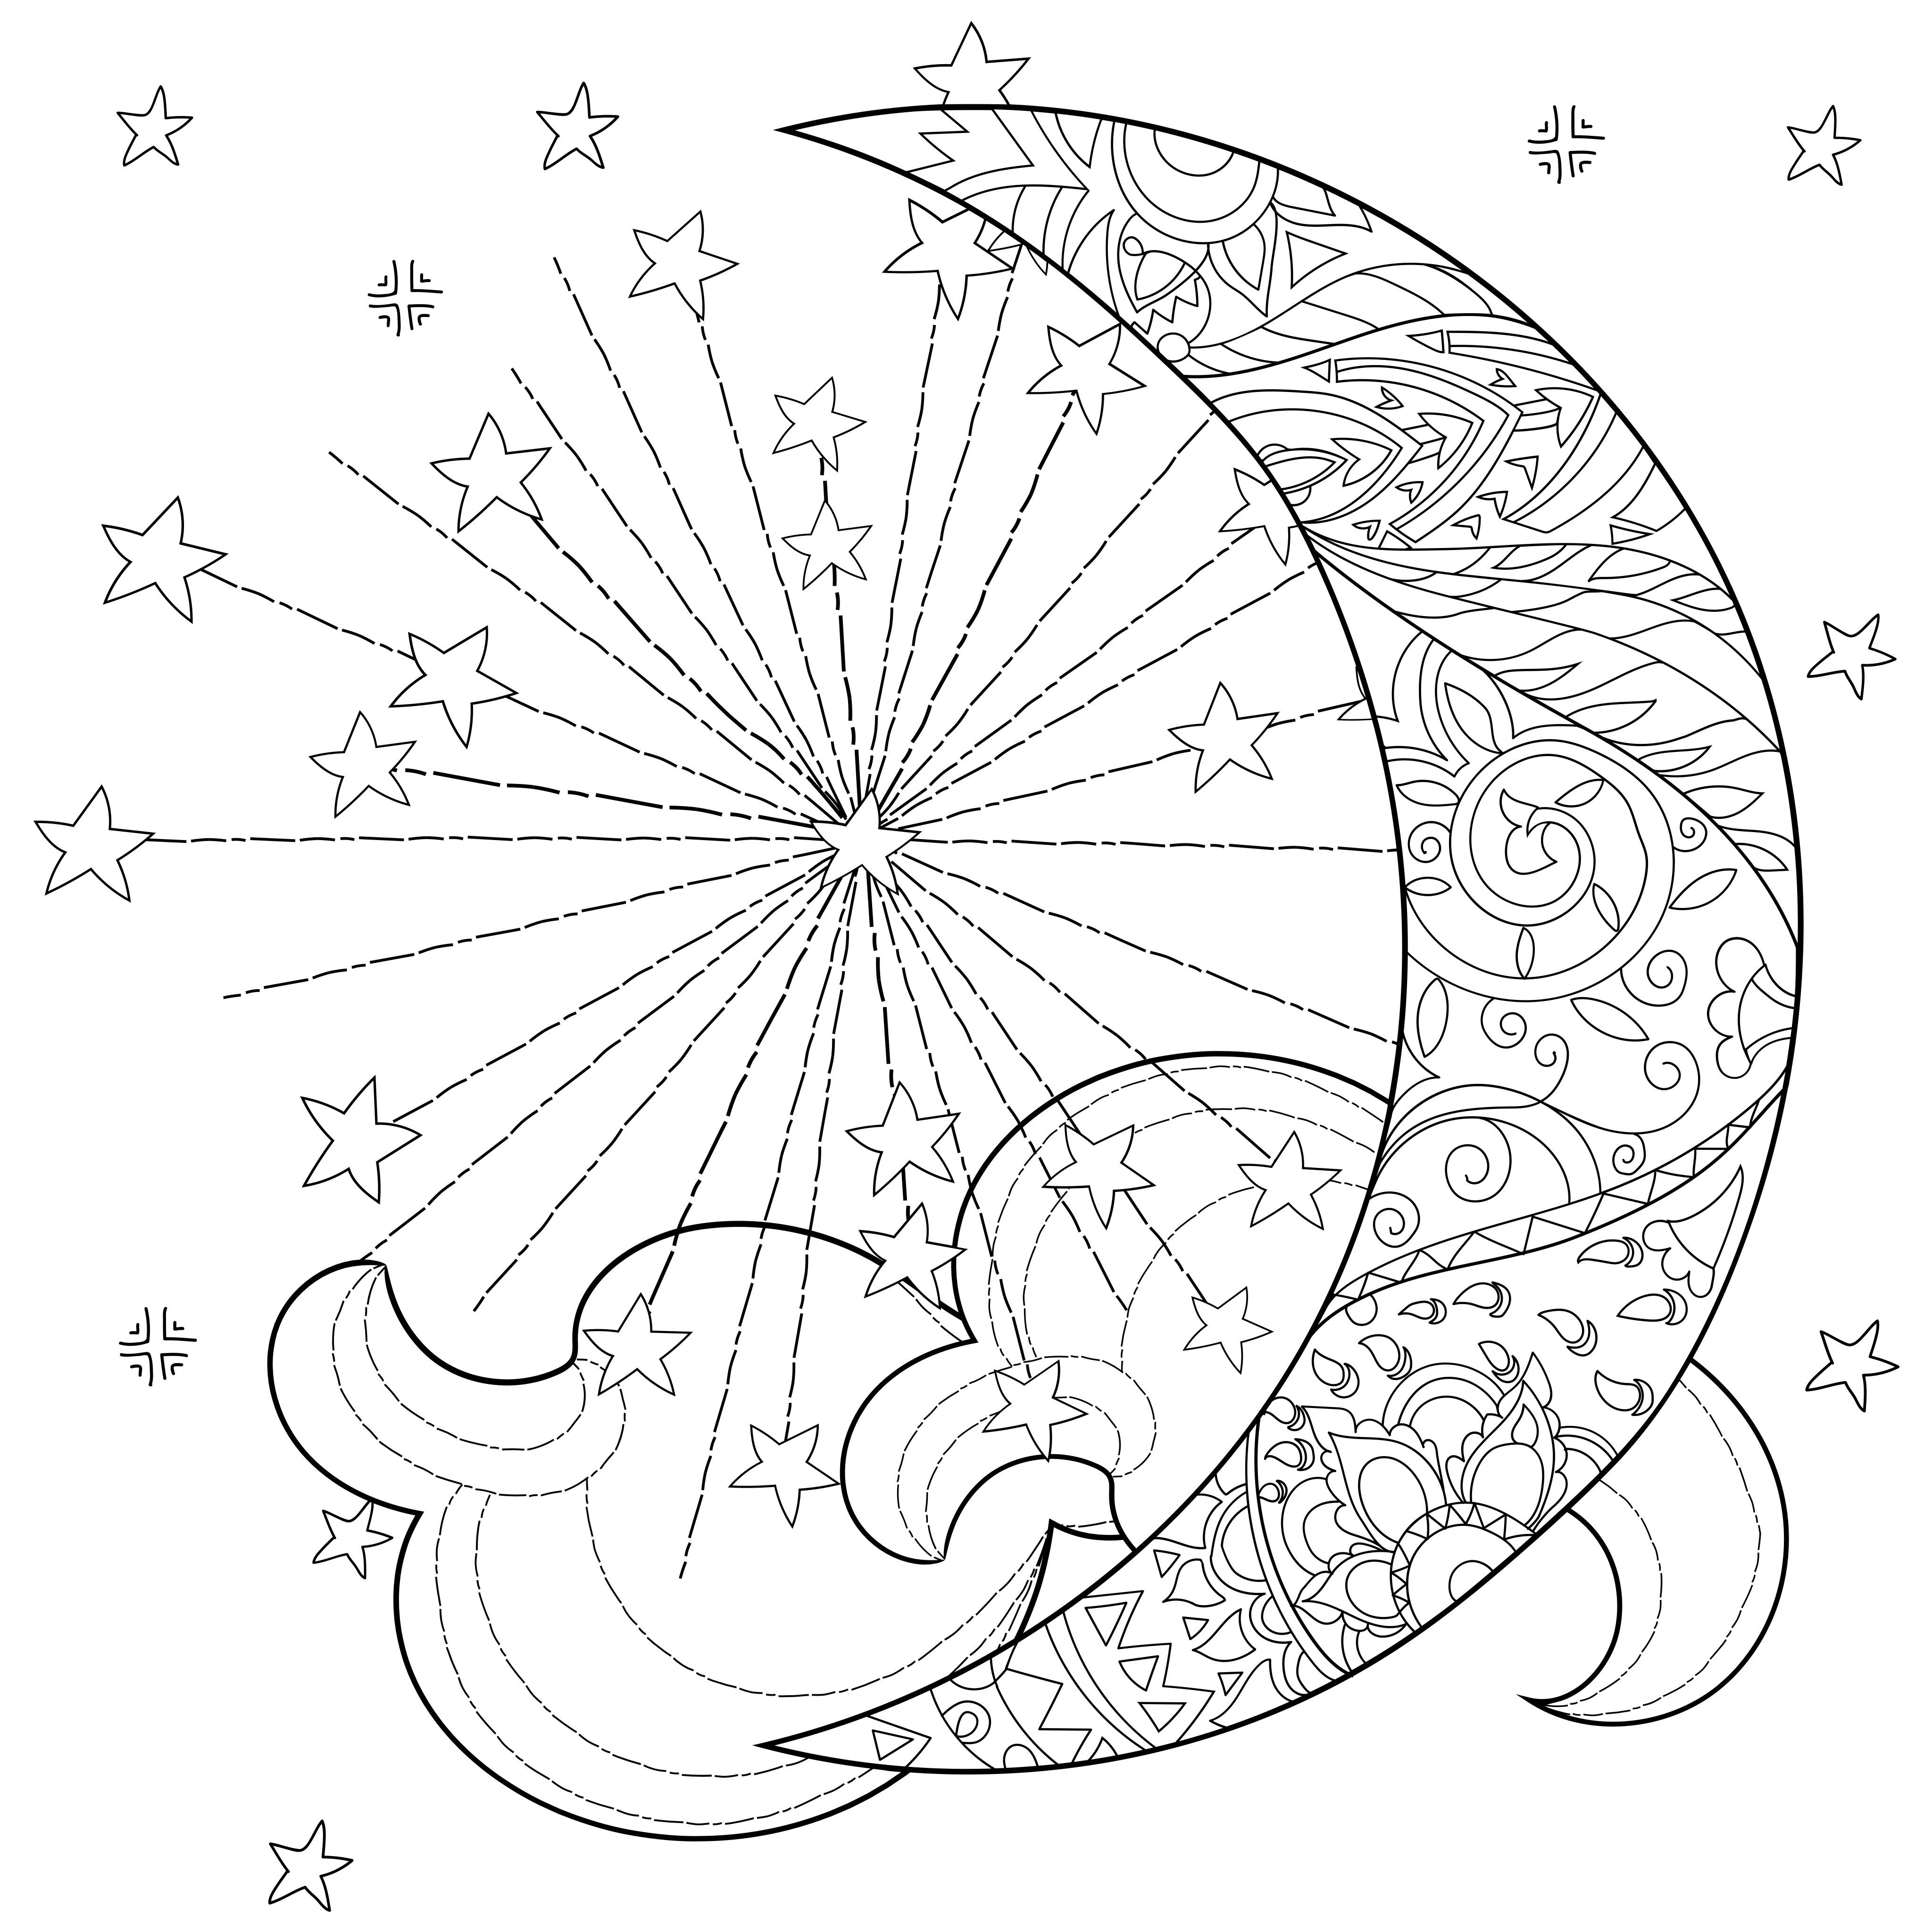 celestial sun moon coloring page (With images) | Moon coloring ...